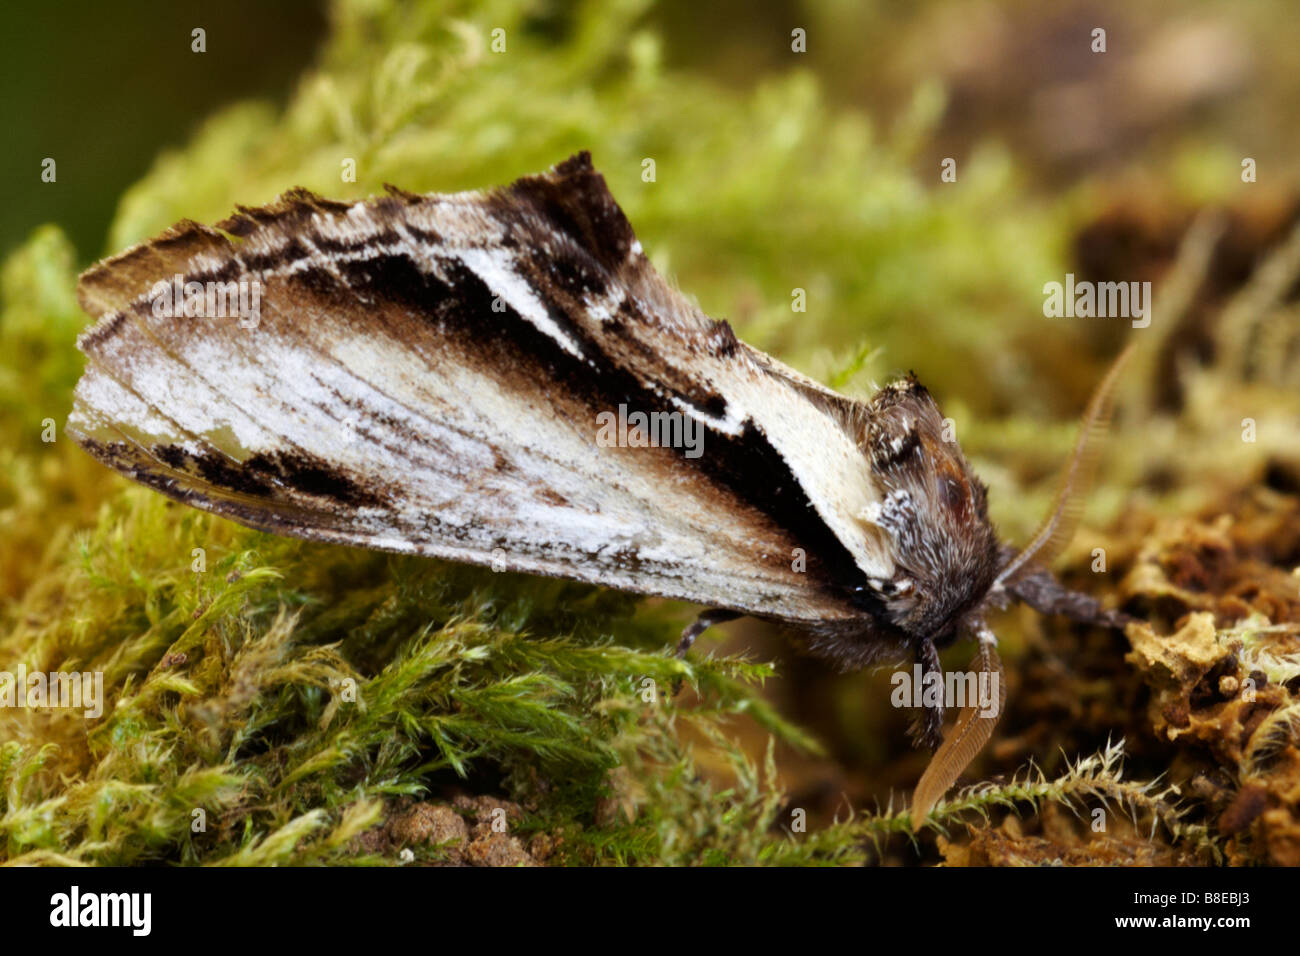 Swallow prominent, Pheosia tremula, moth on mossy bark in August at Dorset - Stock Image